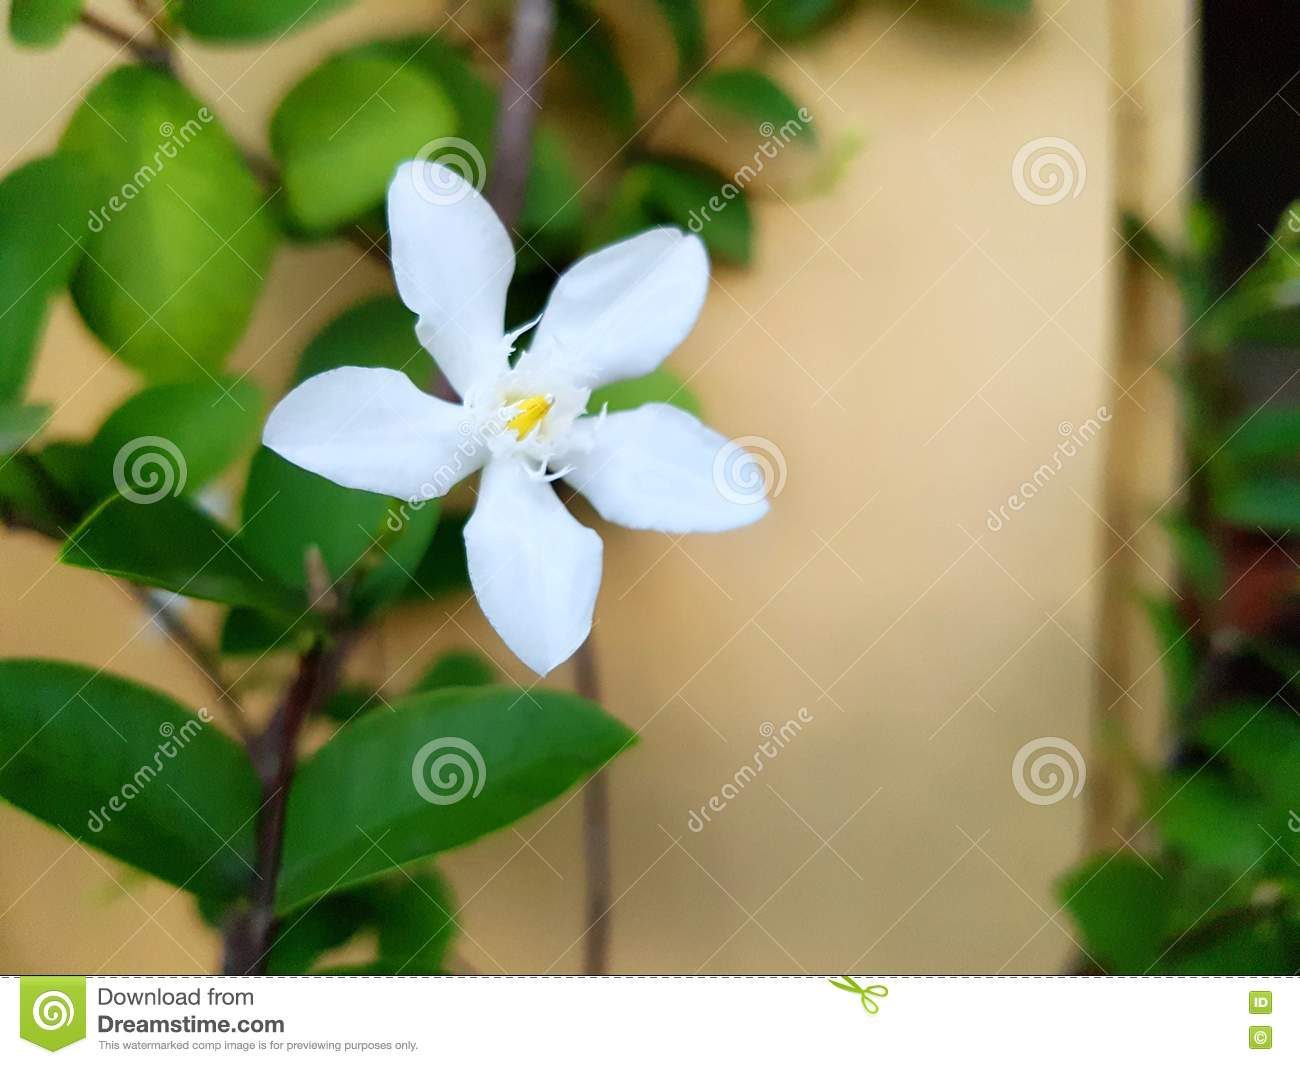 White Angel Flower Stock Image Image Of Flower Other 80710995